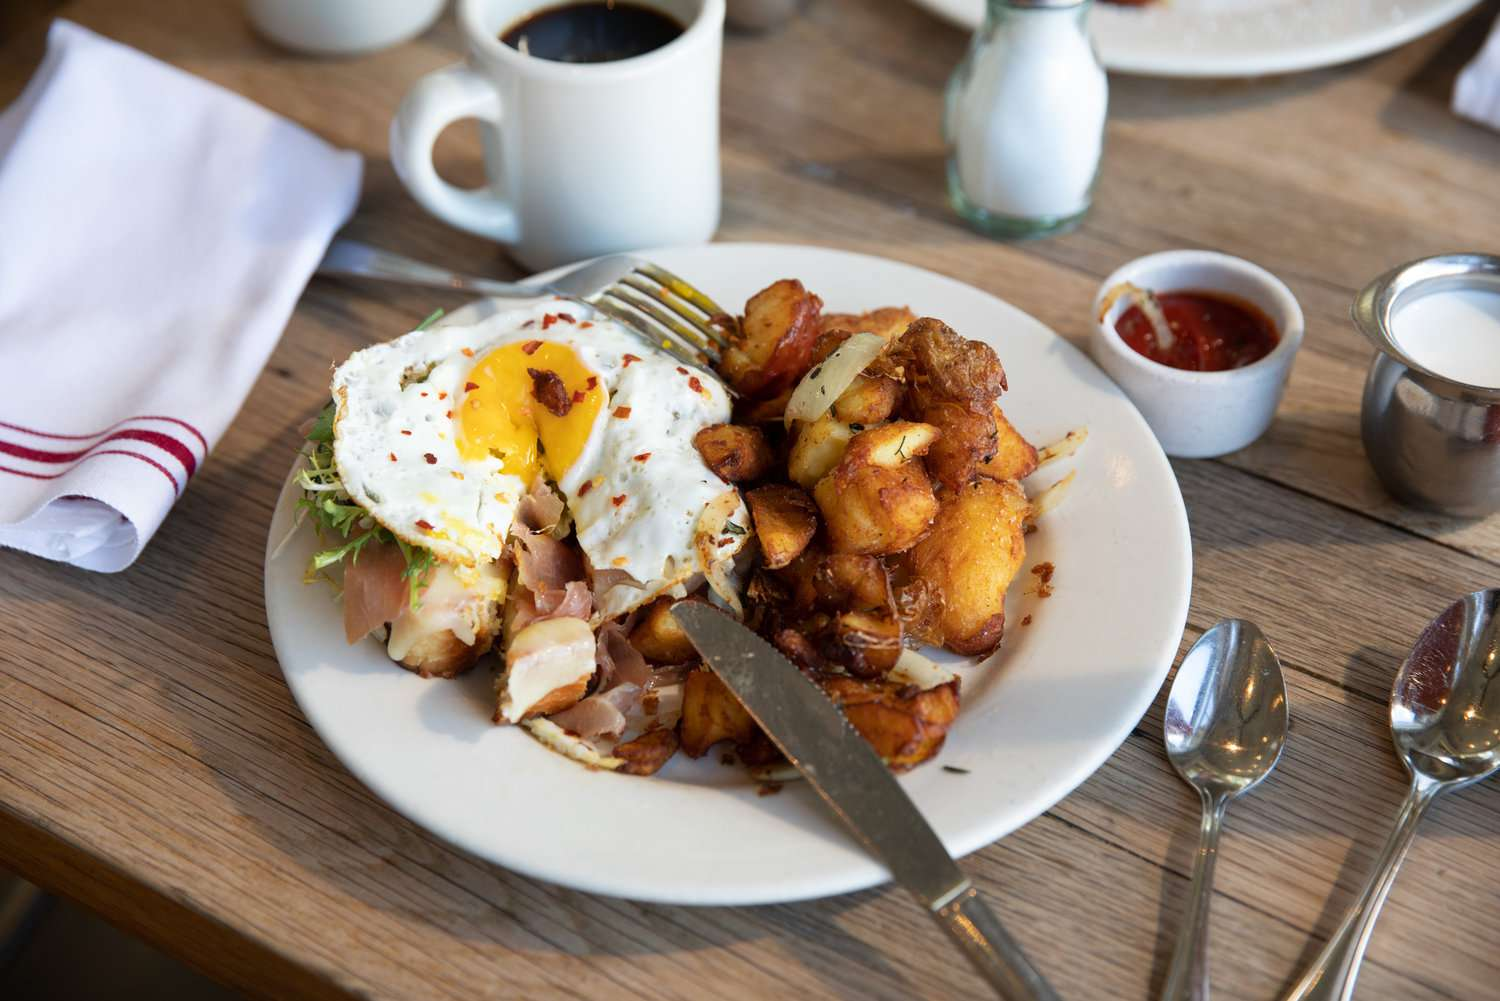 Home fries and a fried egg from Plow in san francisco